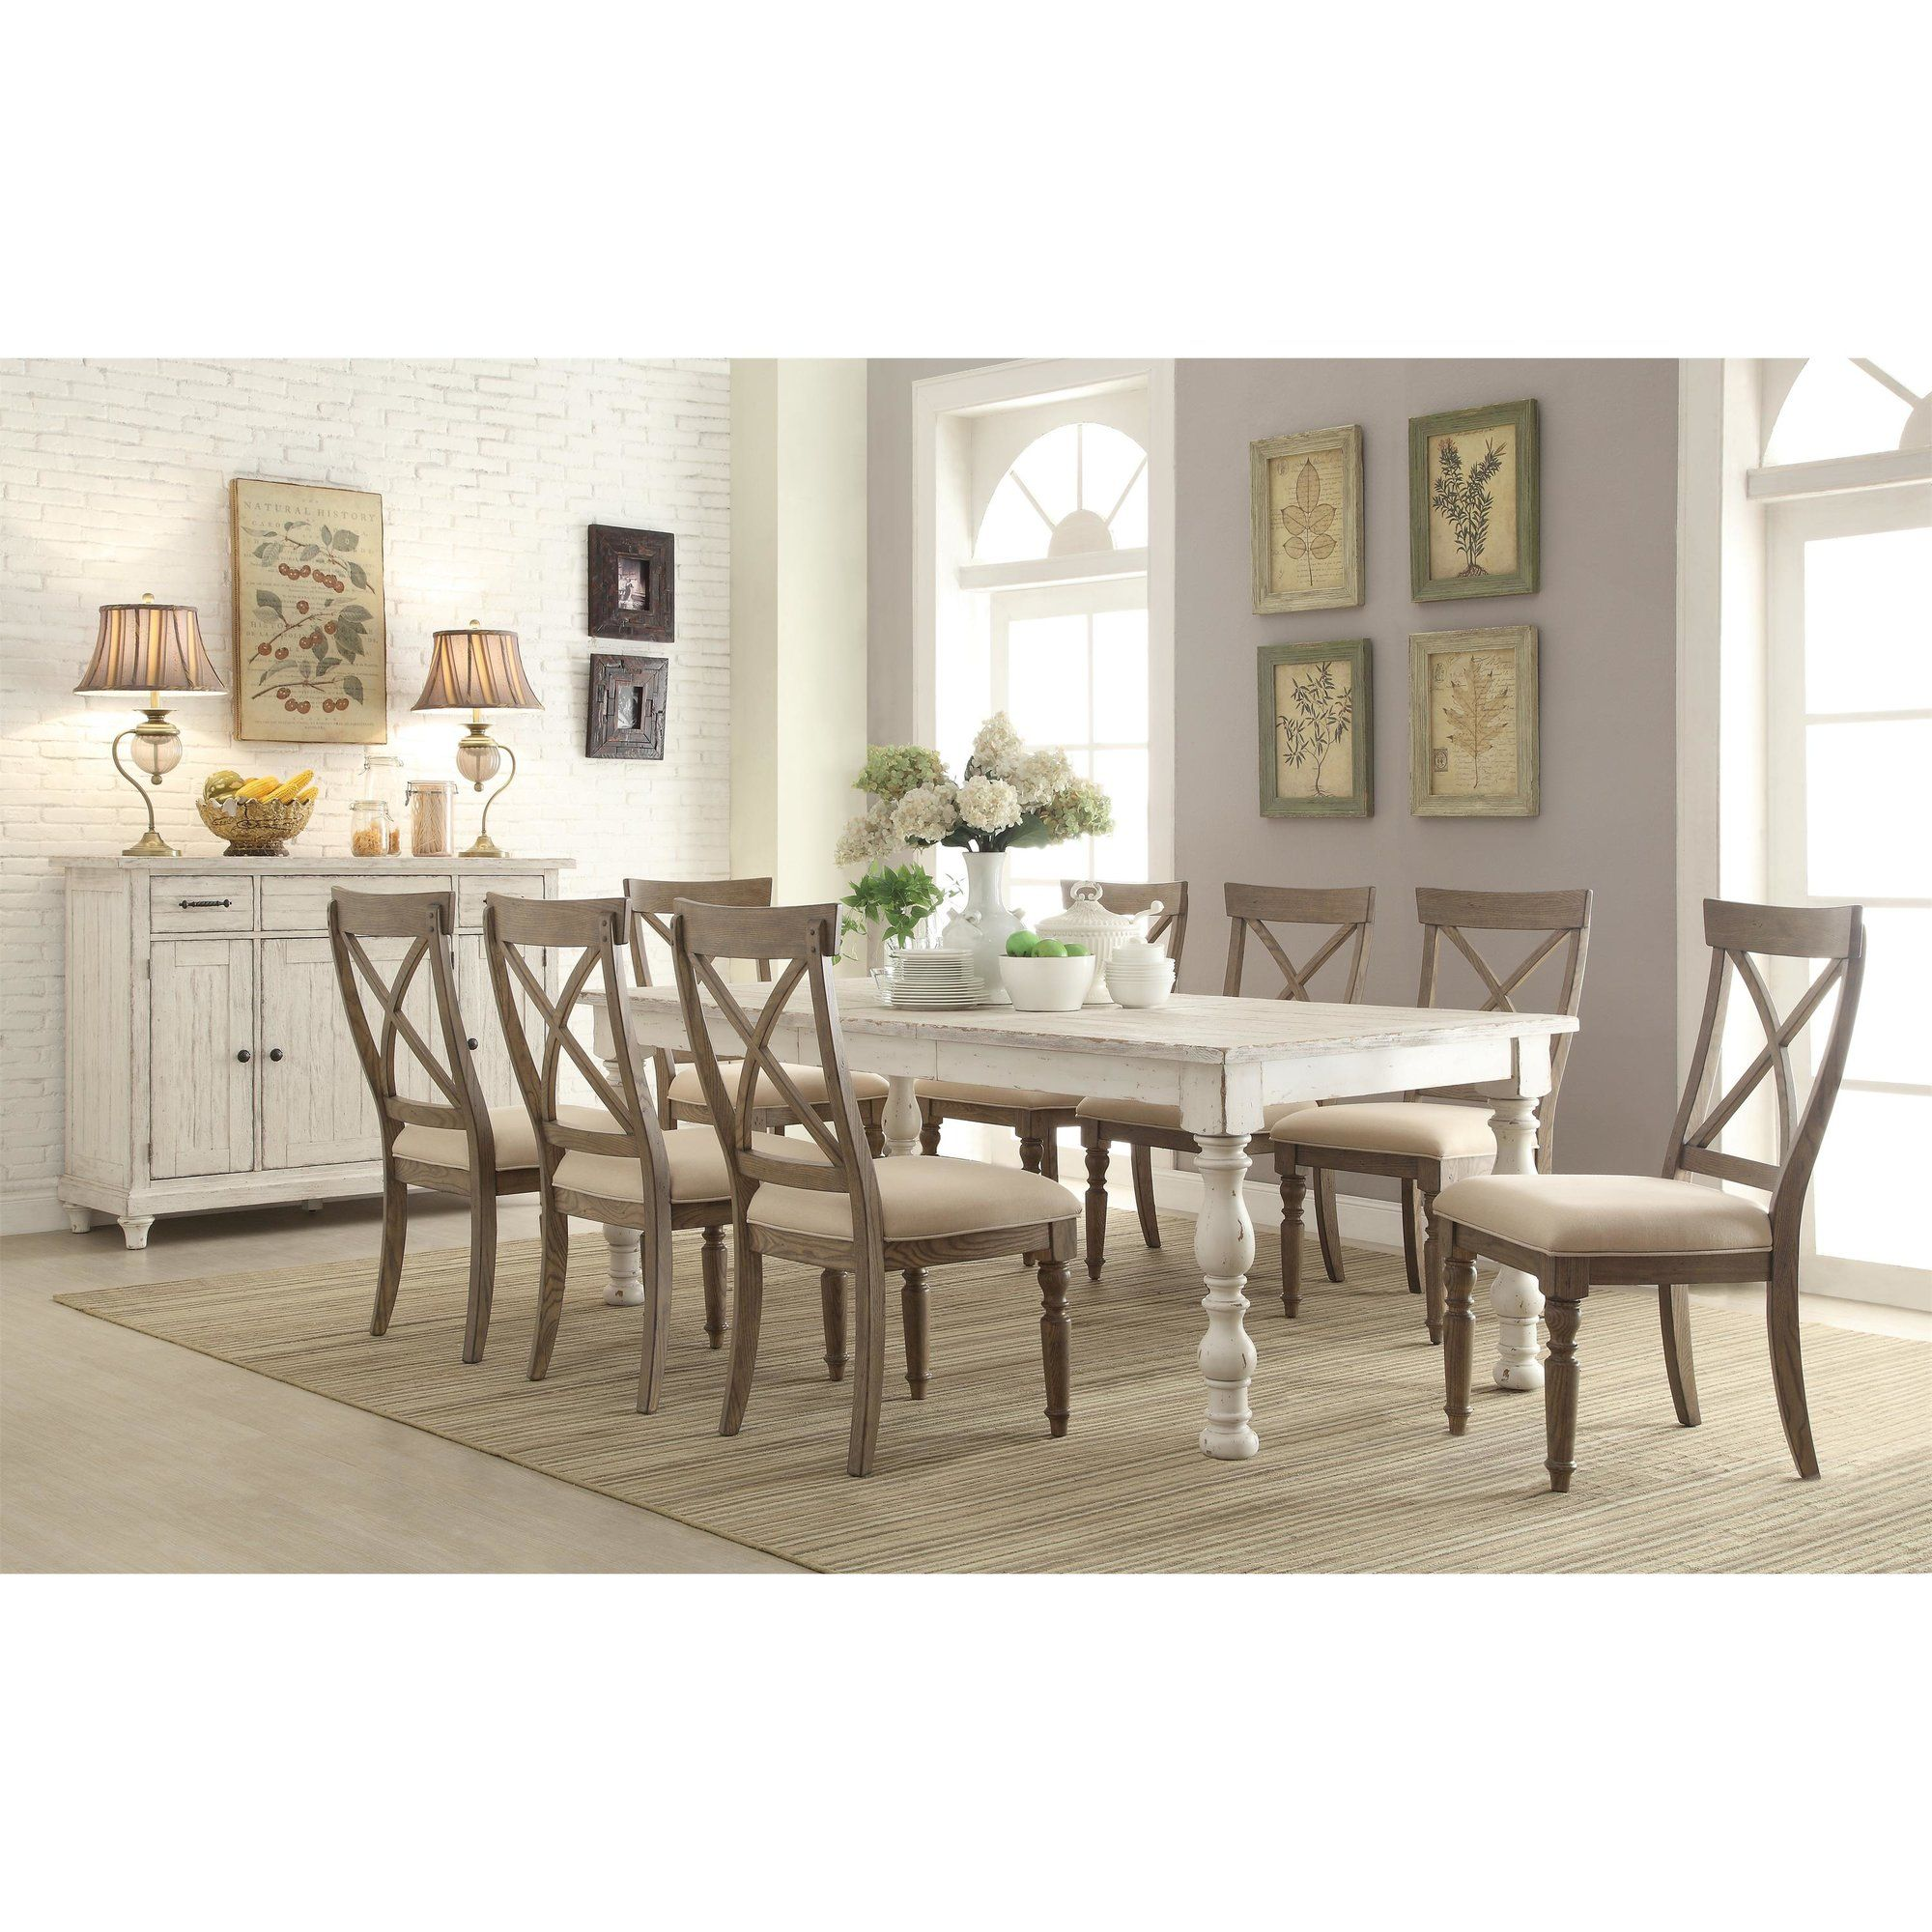 Turenne extendable dining table